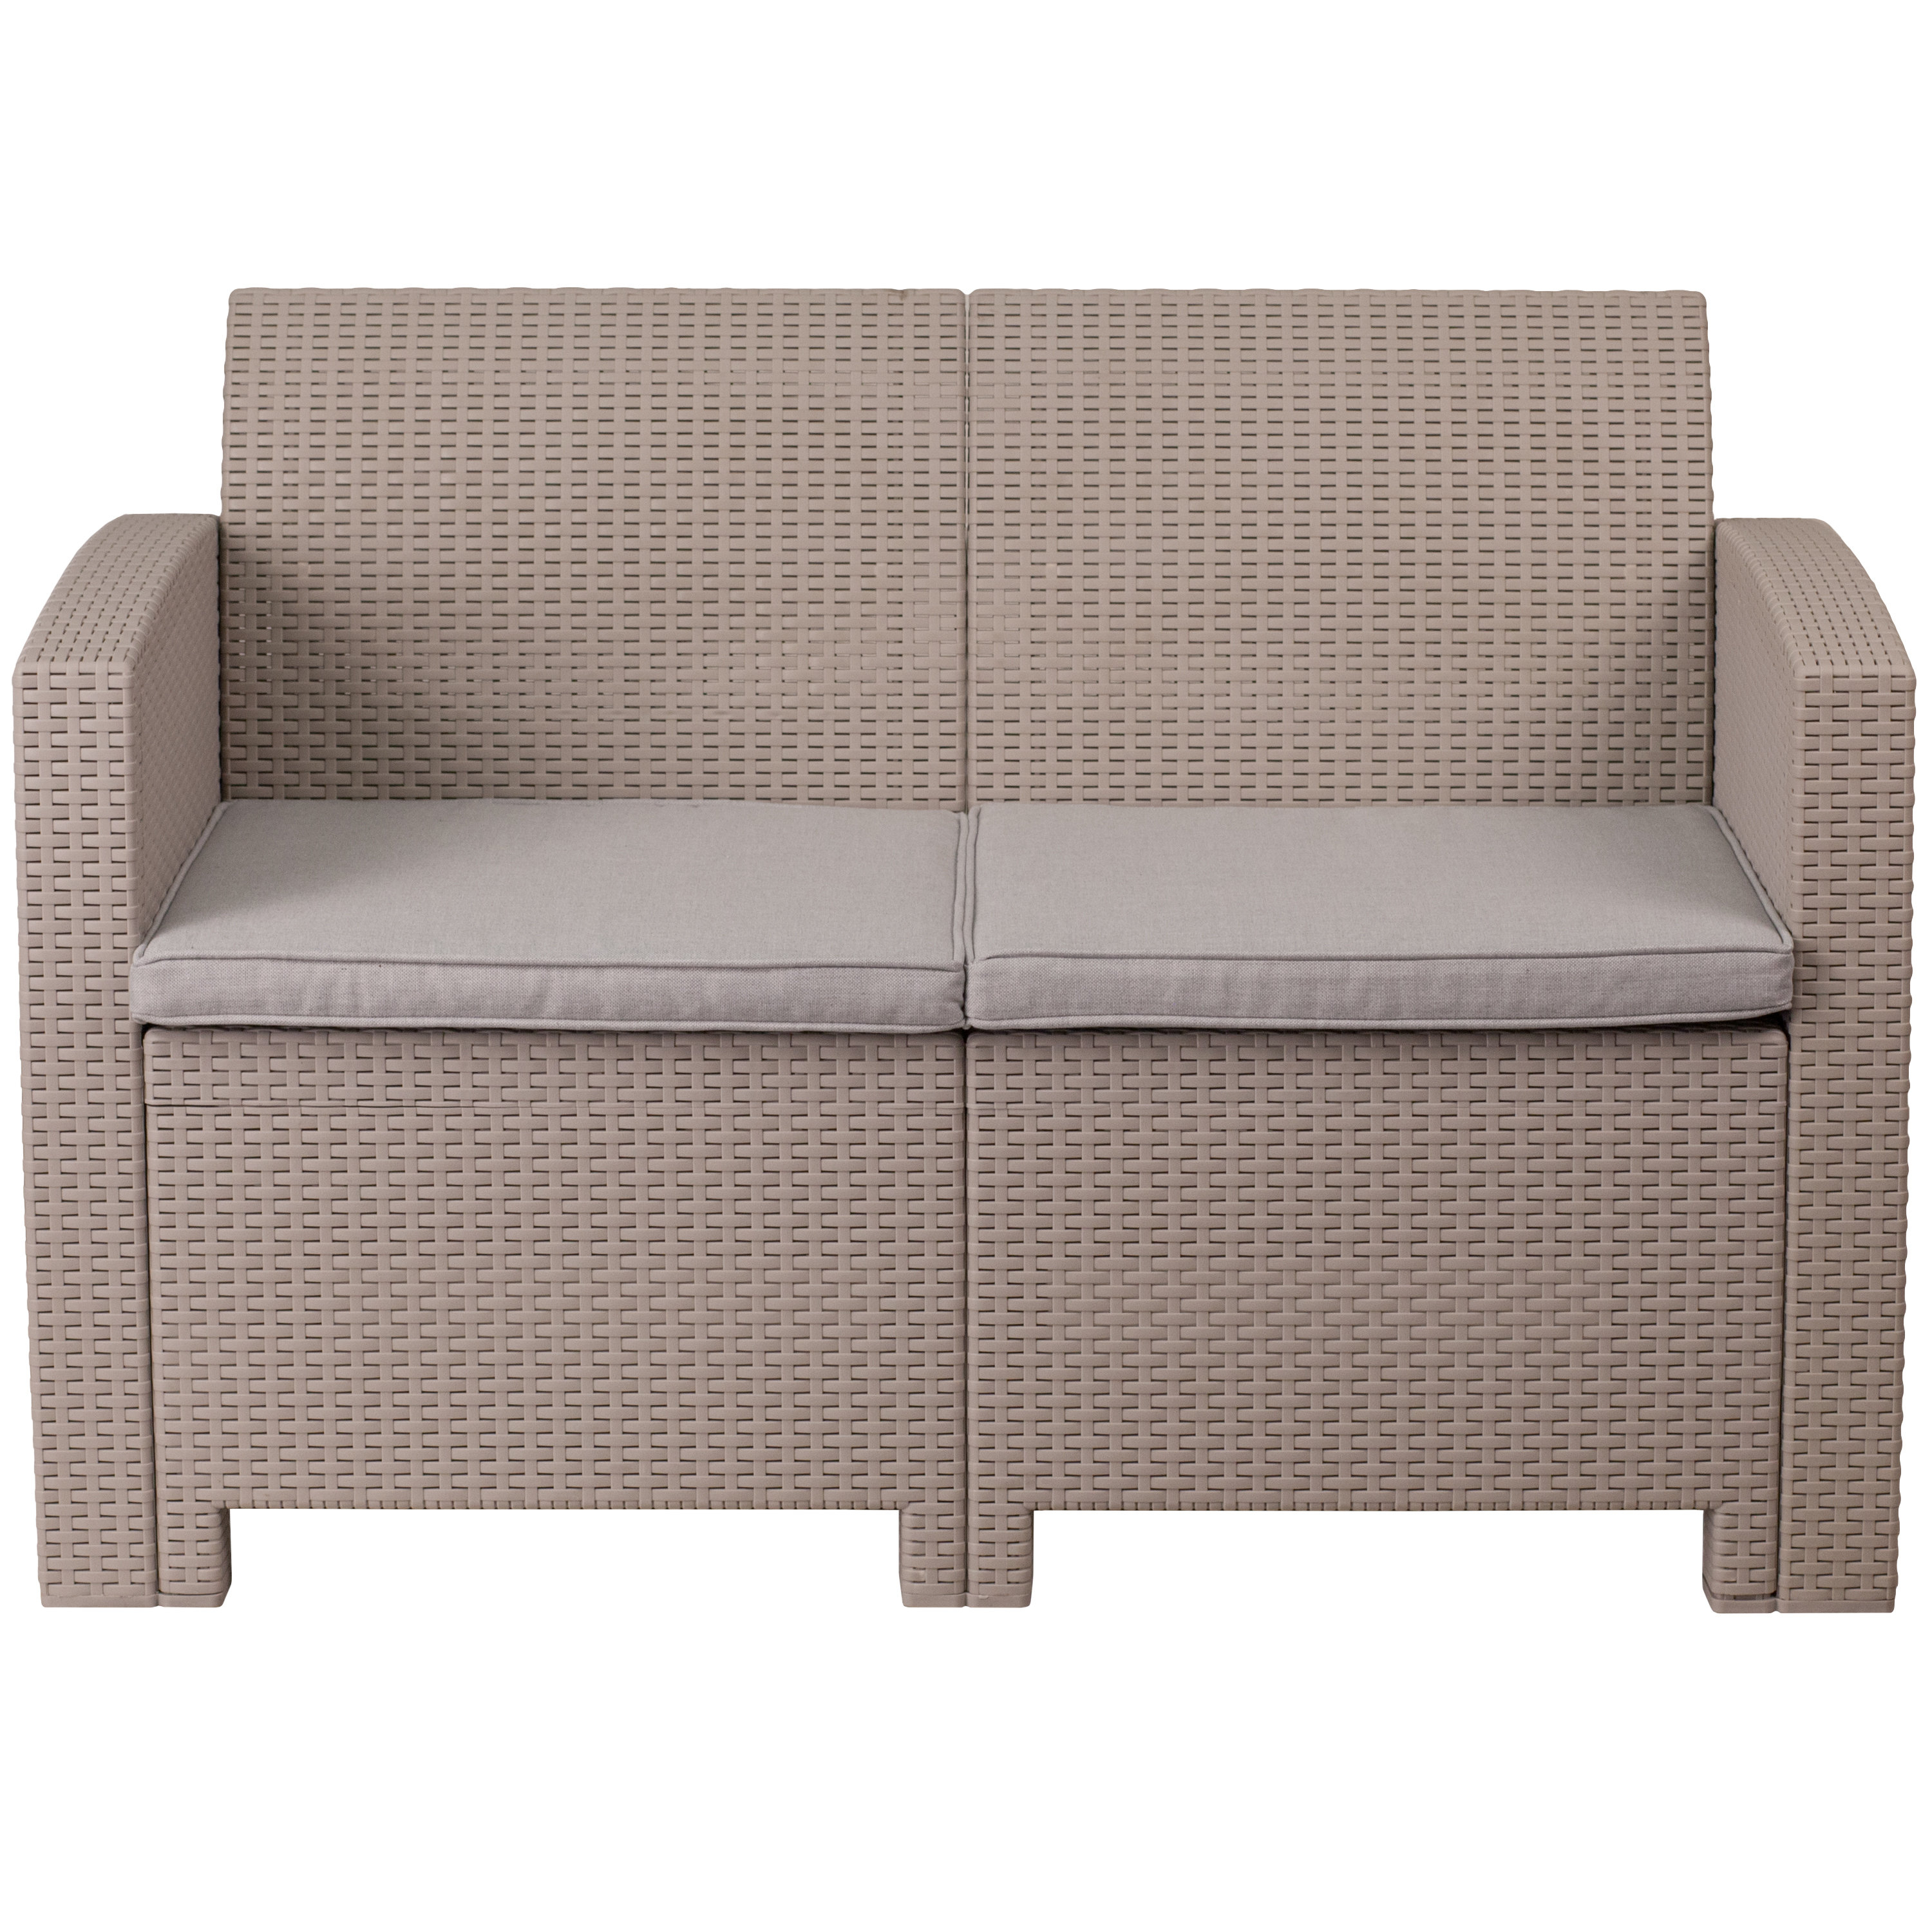 Breakwater Bay Stockwell Loveseat With Cushions & Reviews Within Newest Clifford Loveseats With Cushion (View 2 of 20)